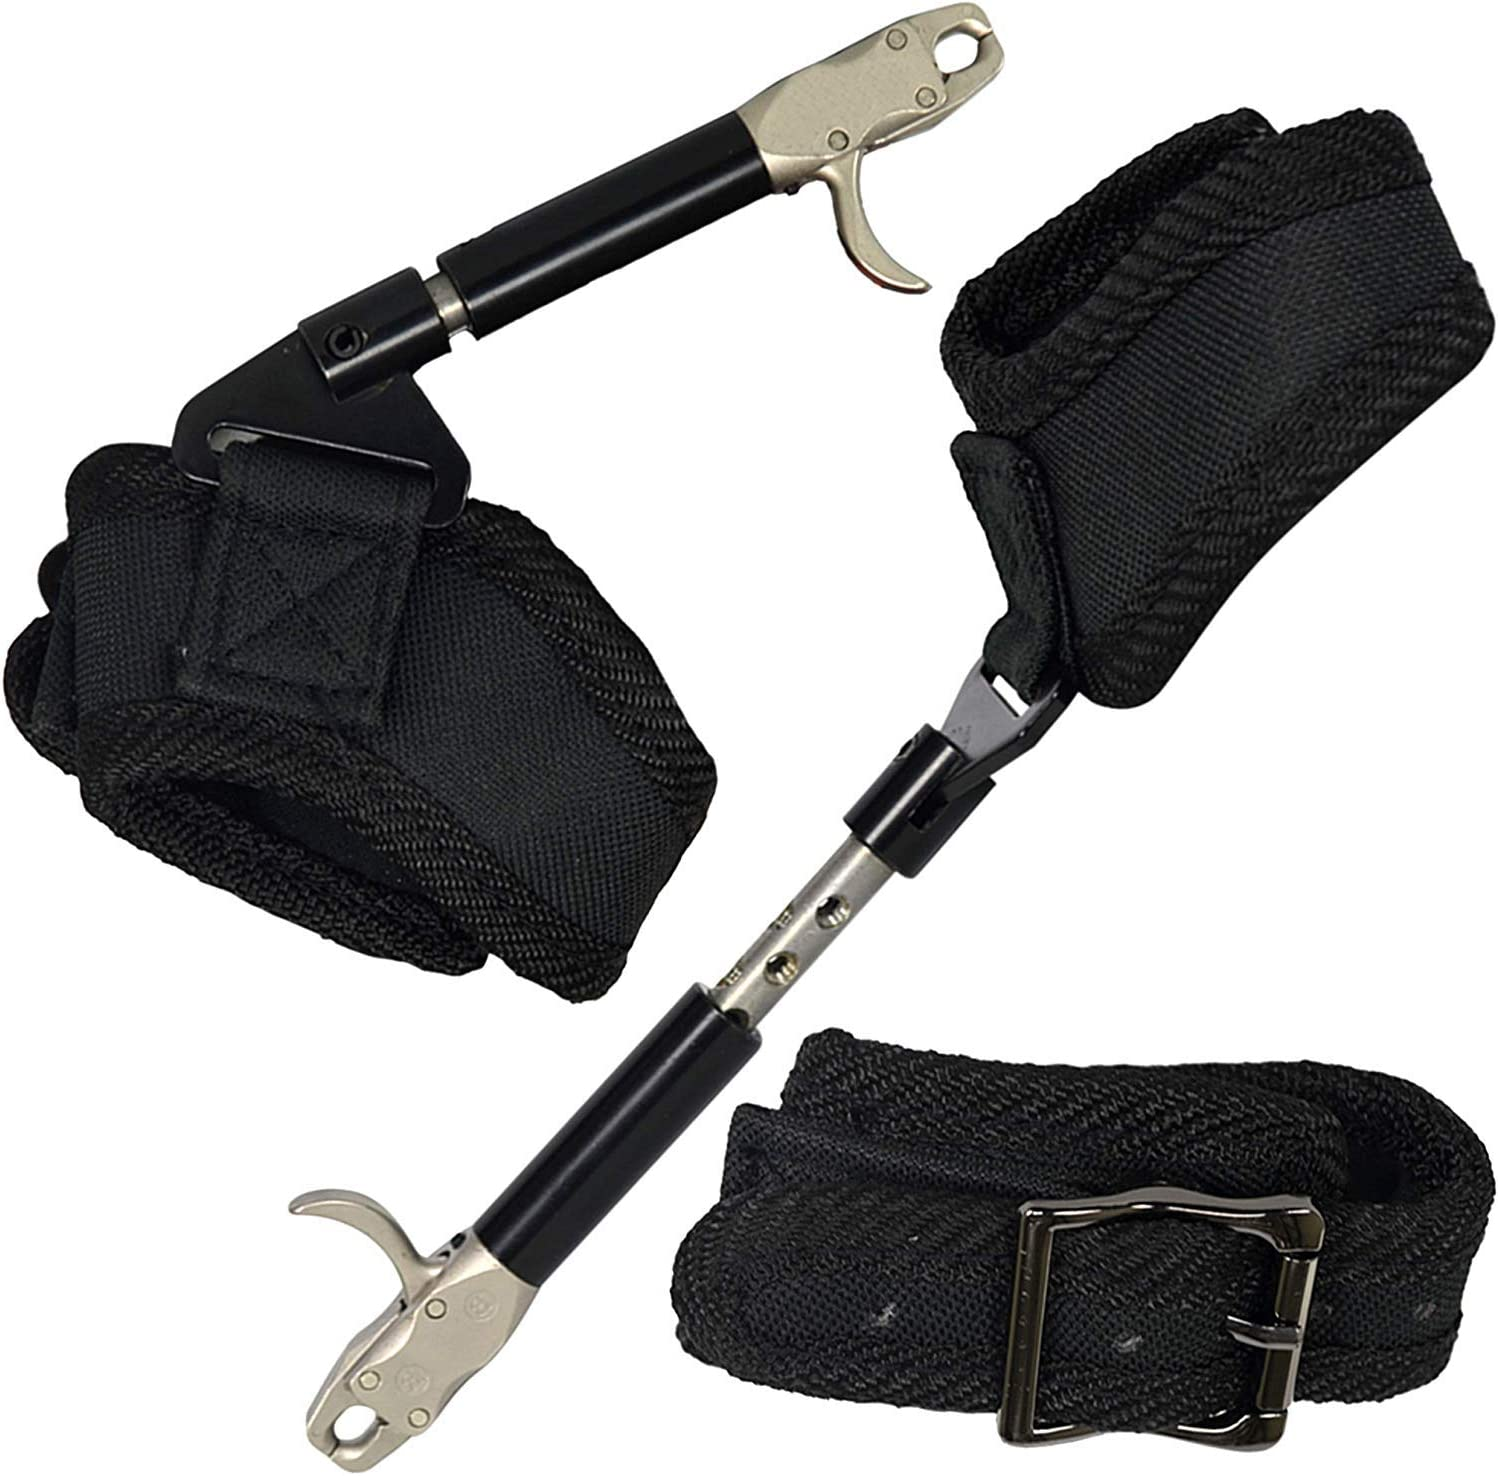 Details about  /Adjustable Archery Caliper Compound Bow Release Buckle Wrist Strap Hook /& Loop